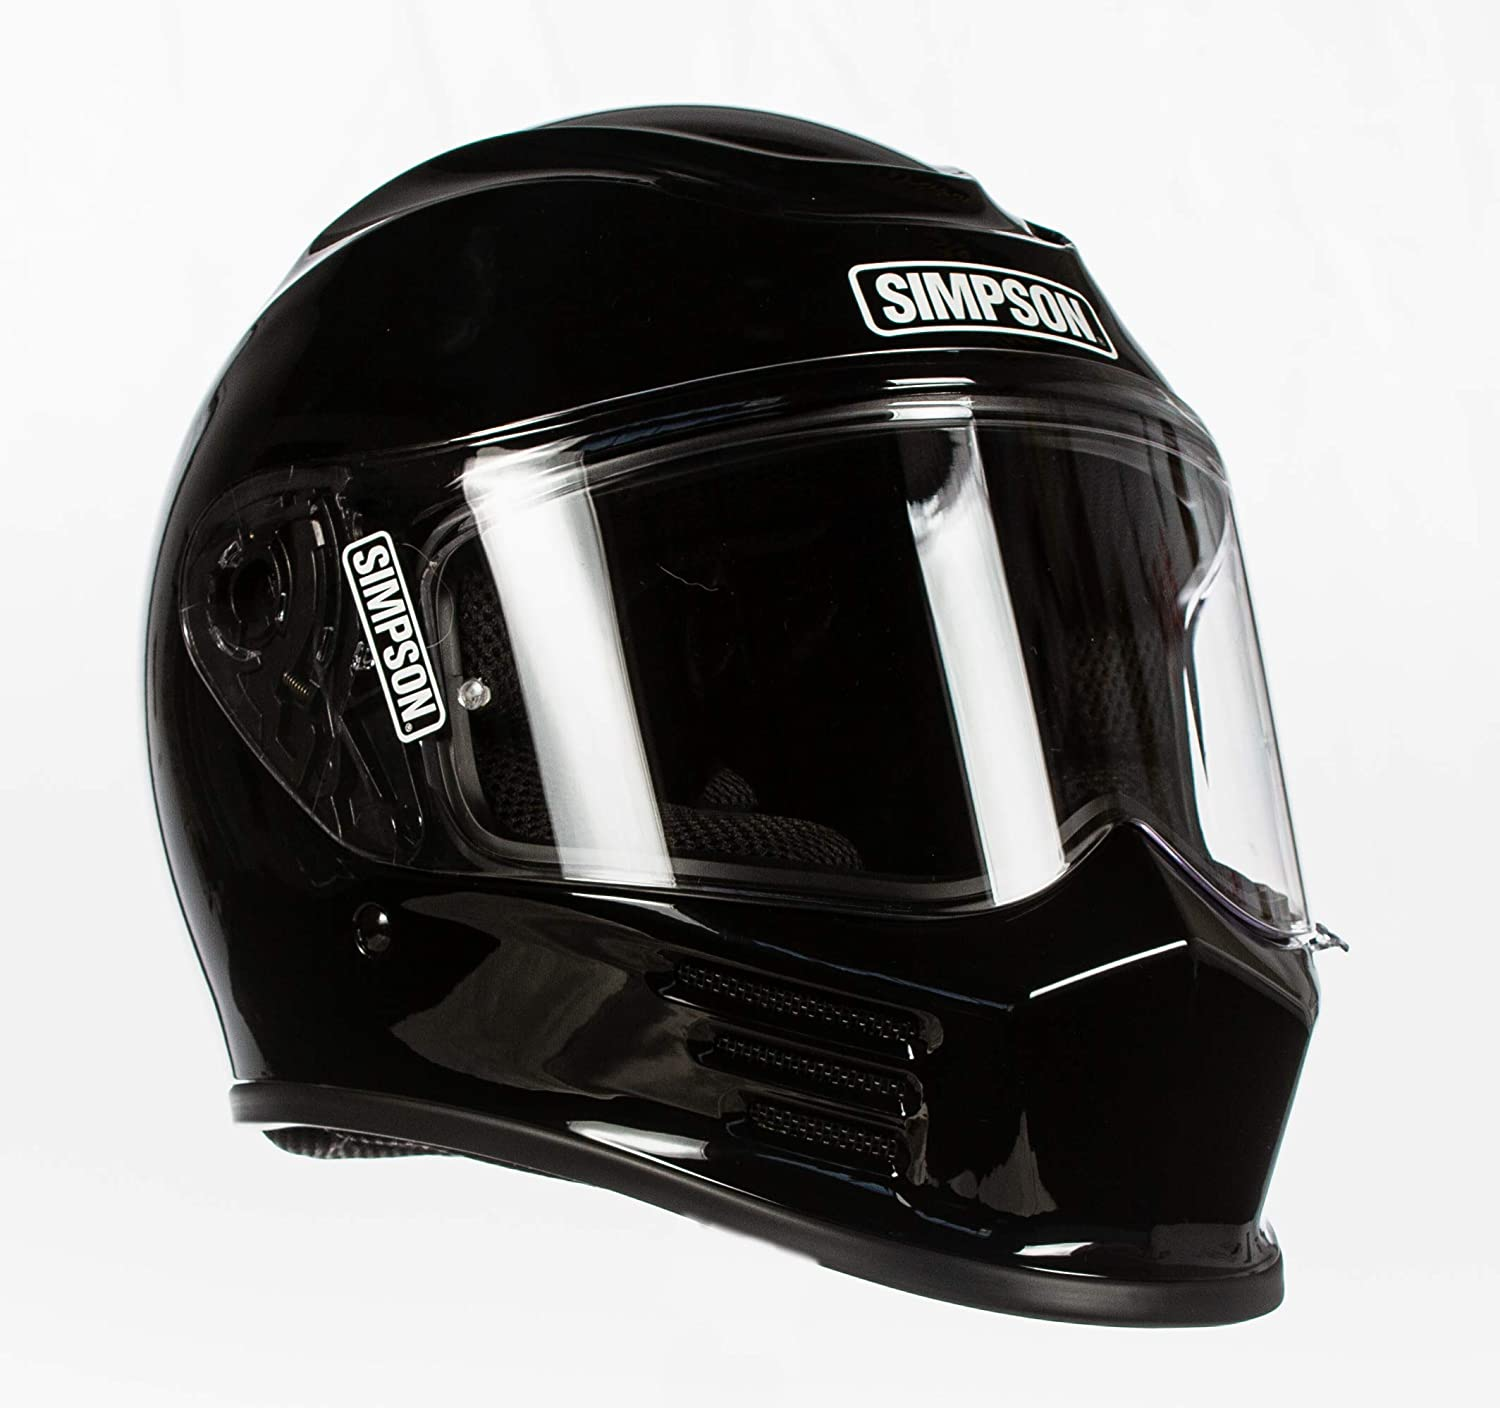 Simpson SPBS2 Fees free!! Cheap sale Speed Bandit Full Face Racing - Small Helmet Size